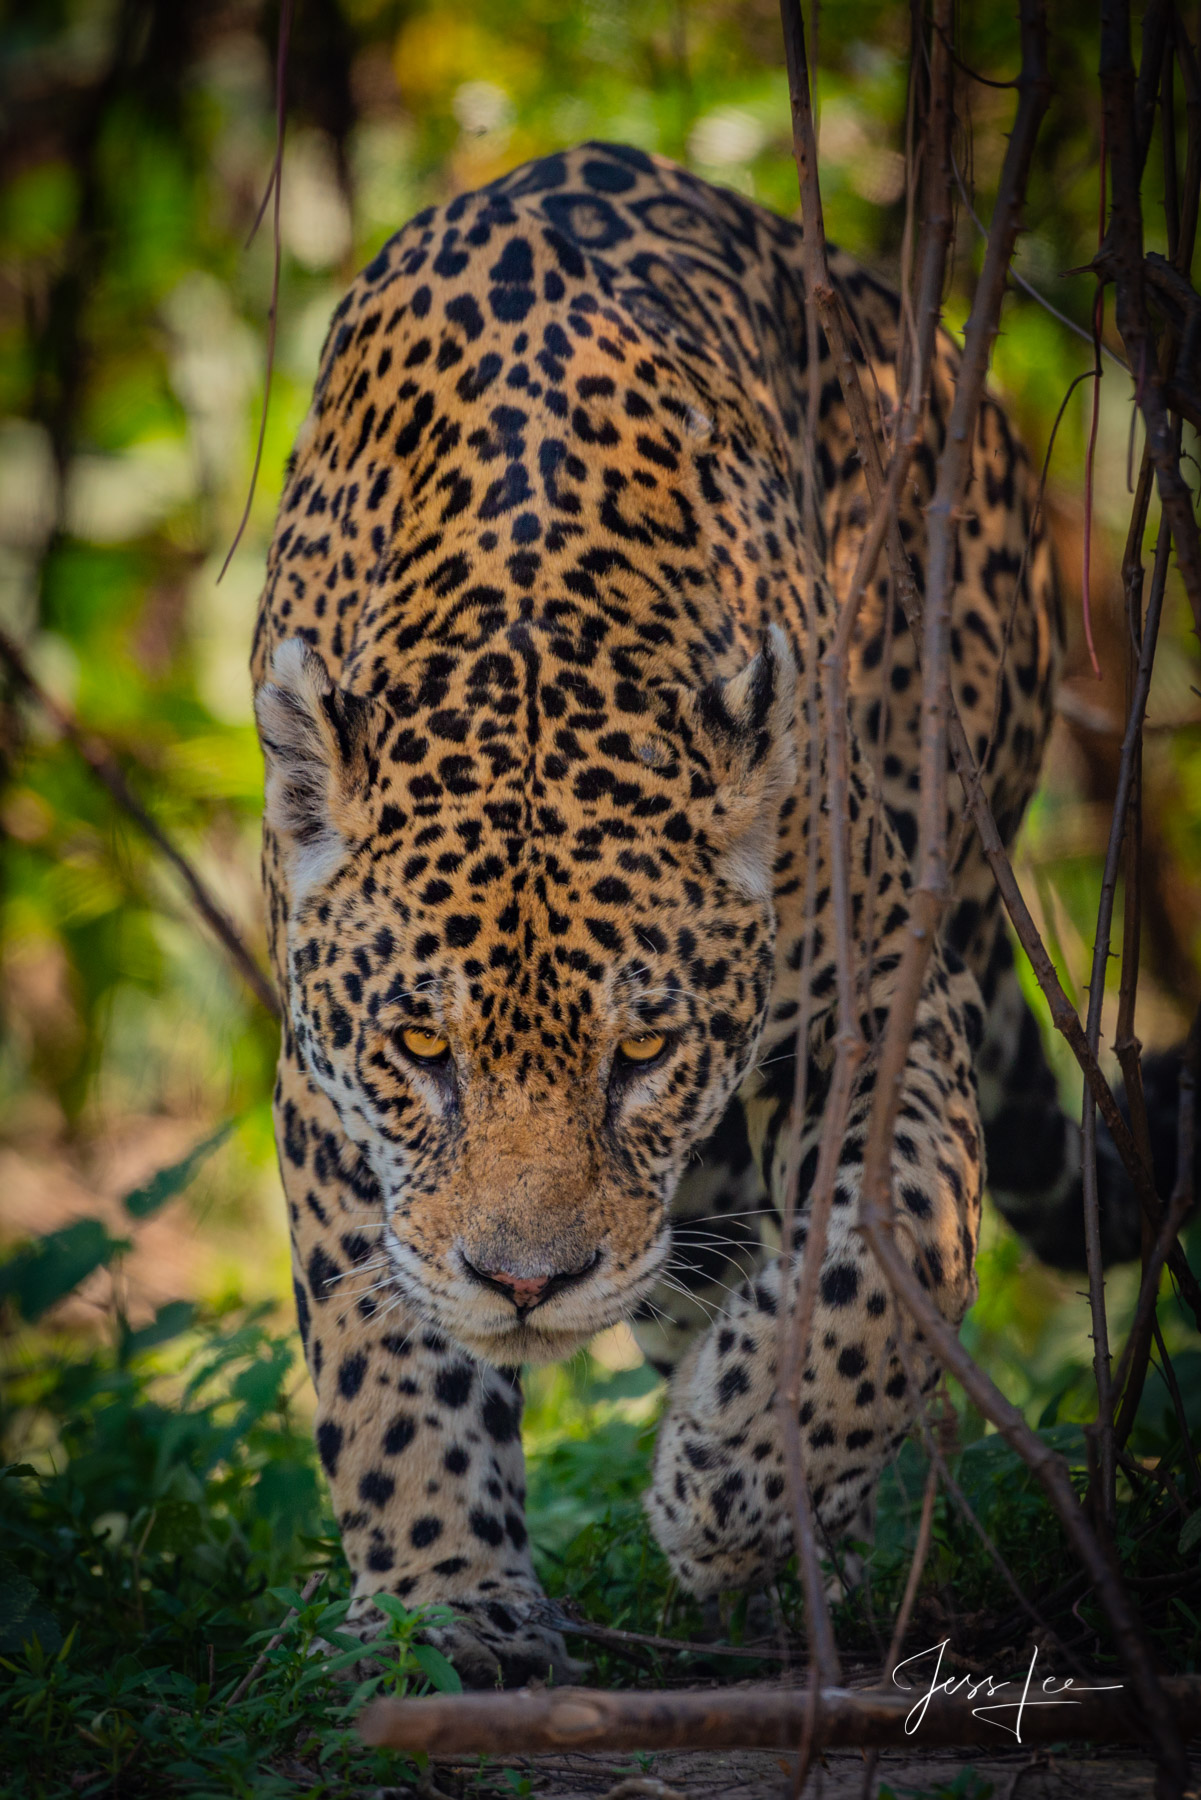 Fine art Jaguar stalking in silence print limited edition of 300 luxury prints by Jess Lee. All photographs copyright © Jess...